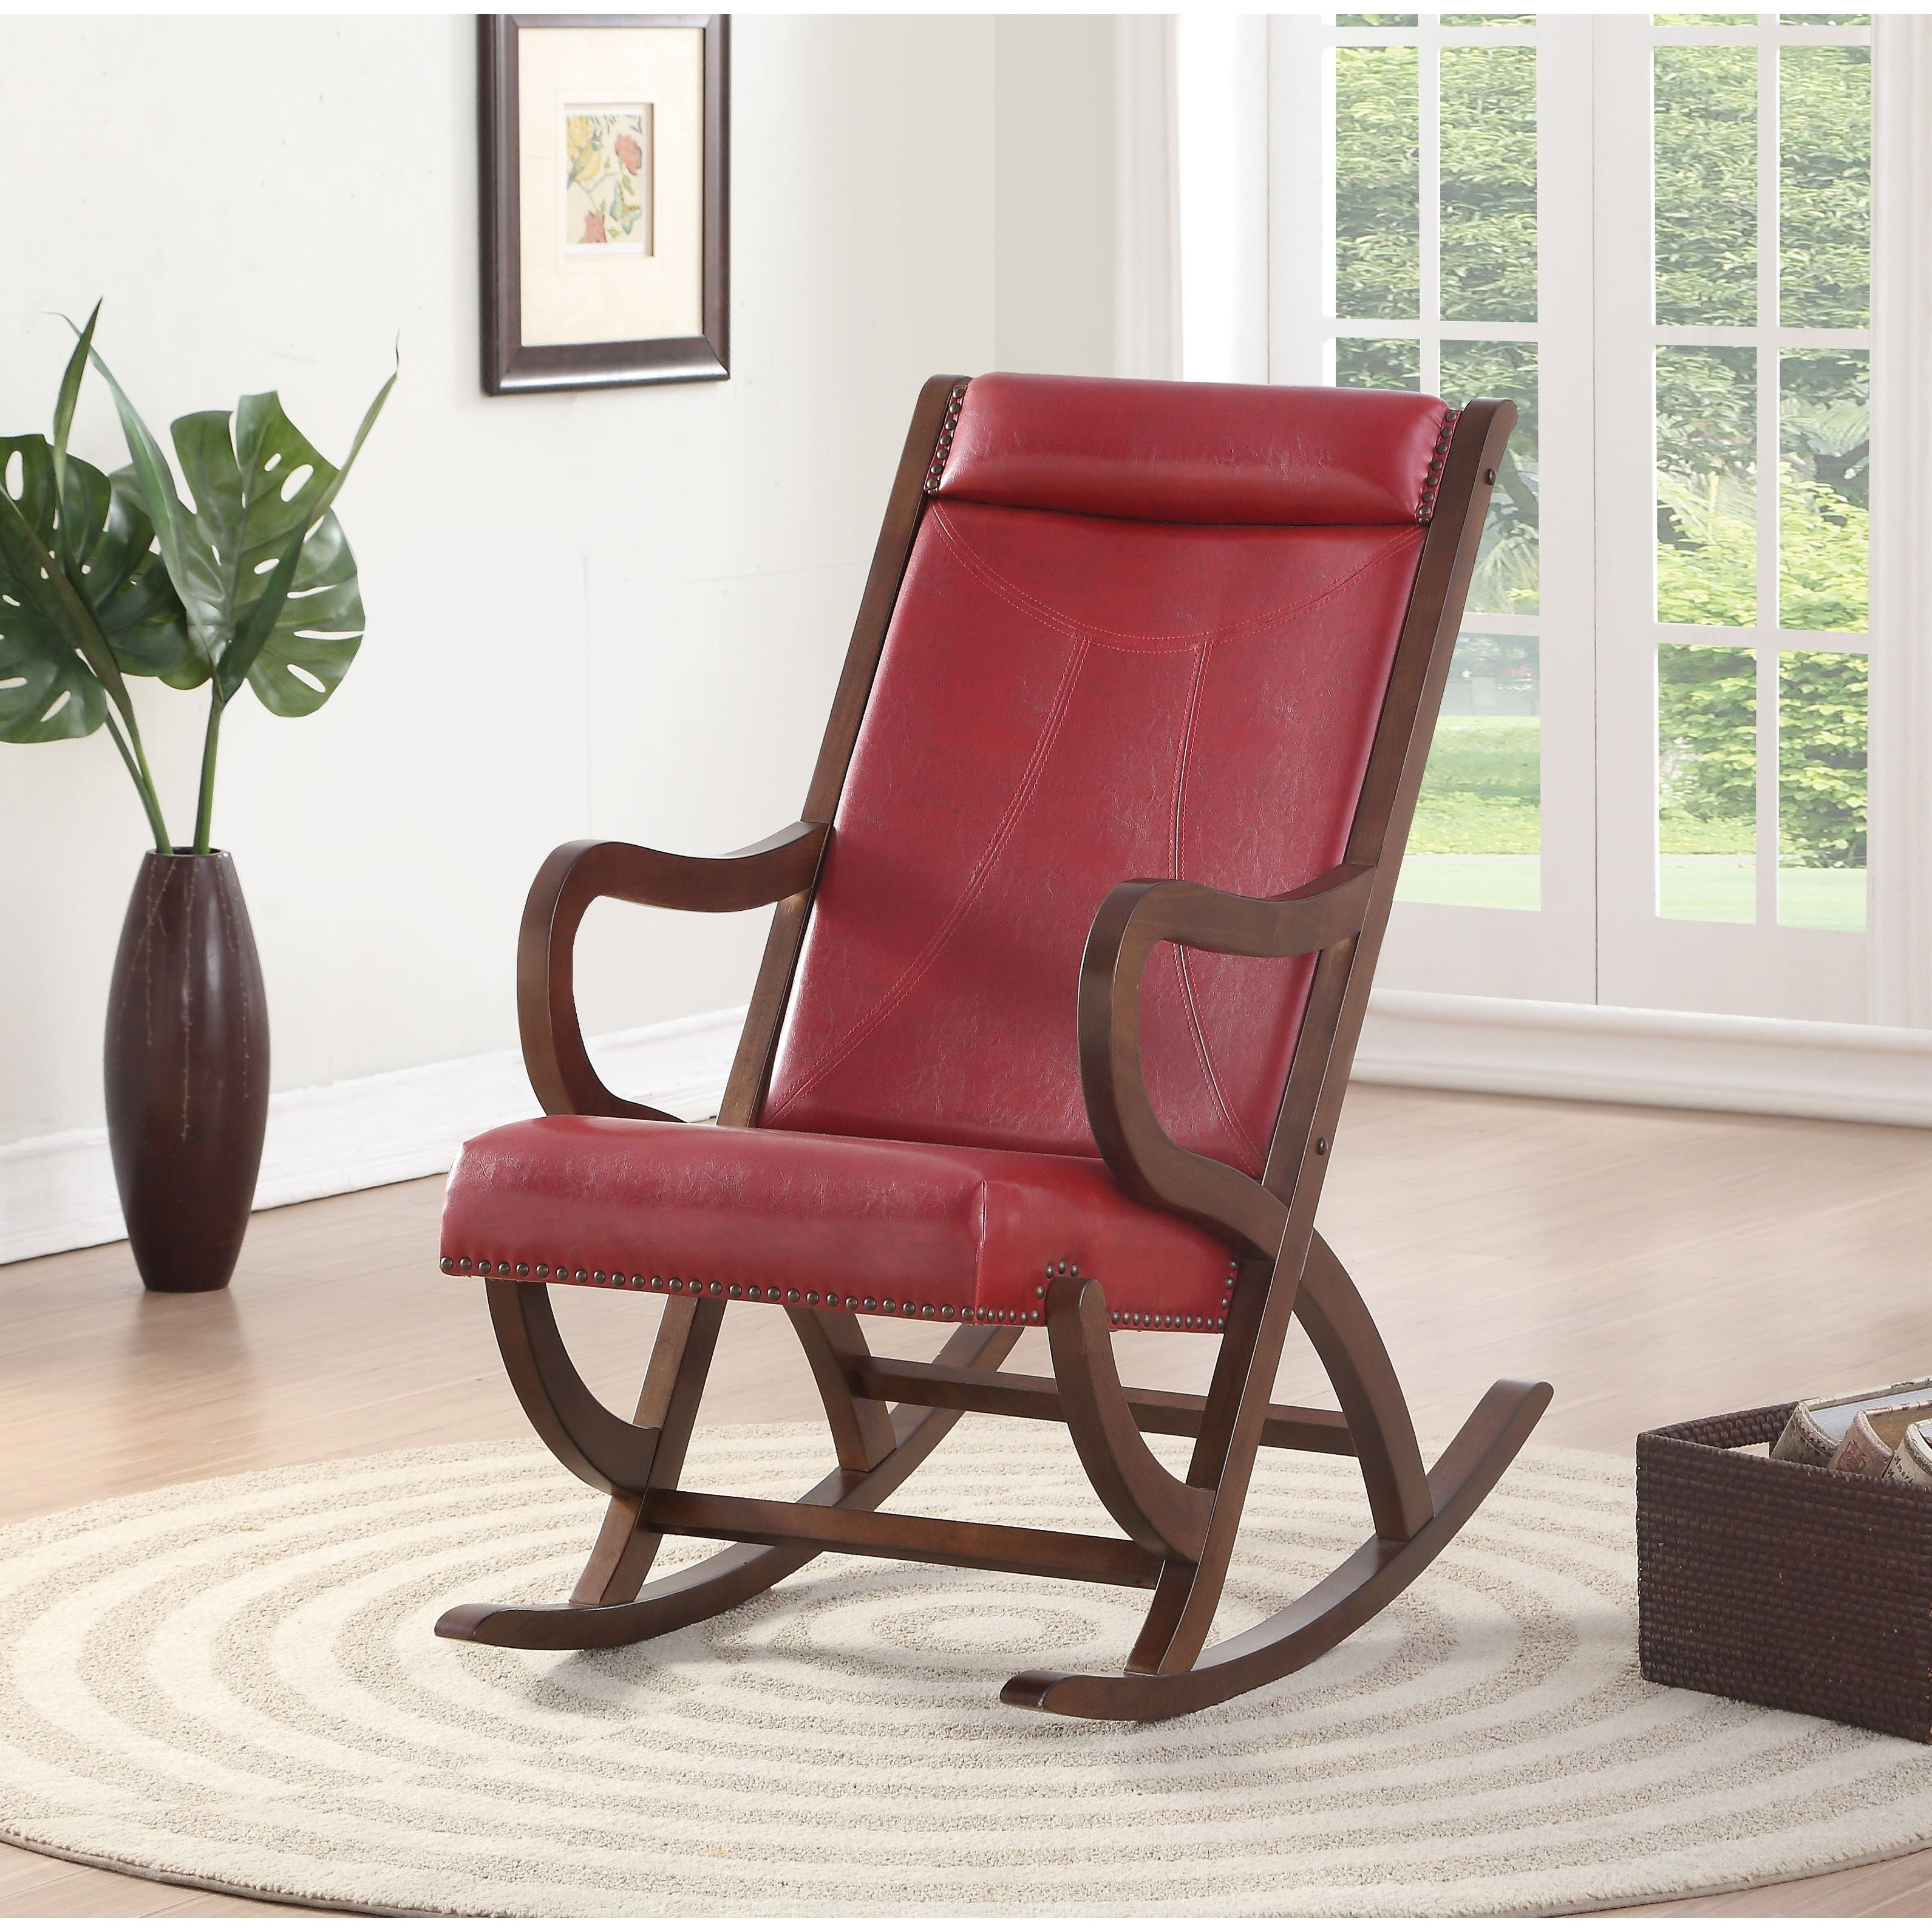 Popular Photo of Faux Leather Upholstered Wooden Rocking Chairs With Looped Arms, Brown And Red